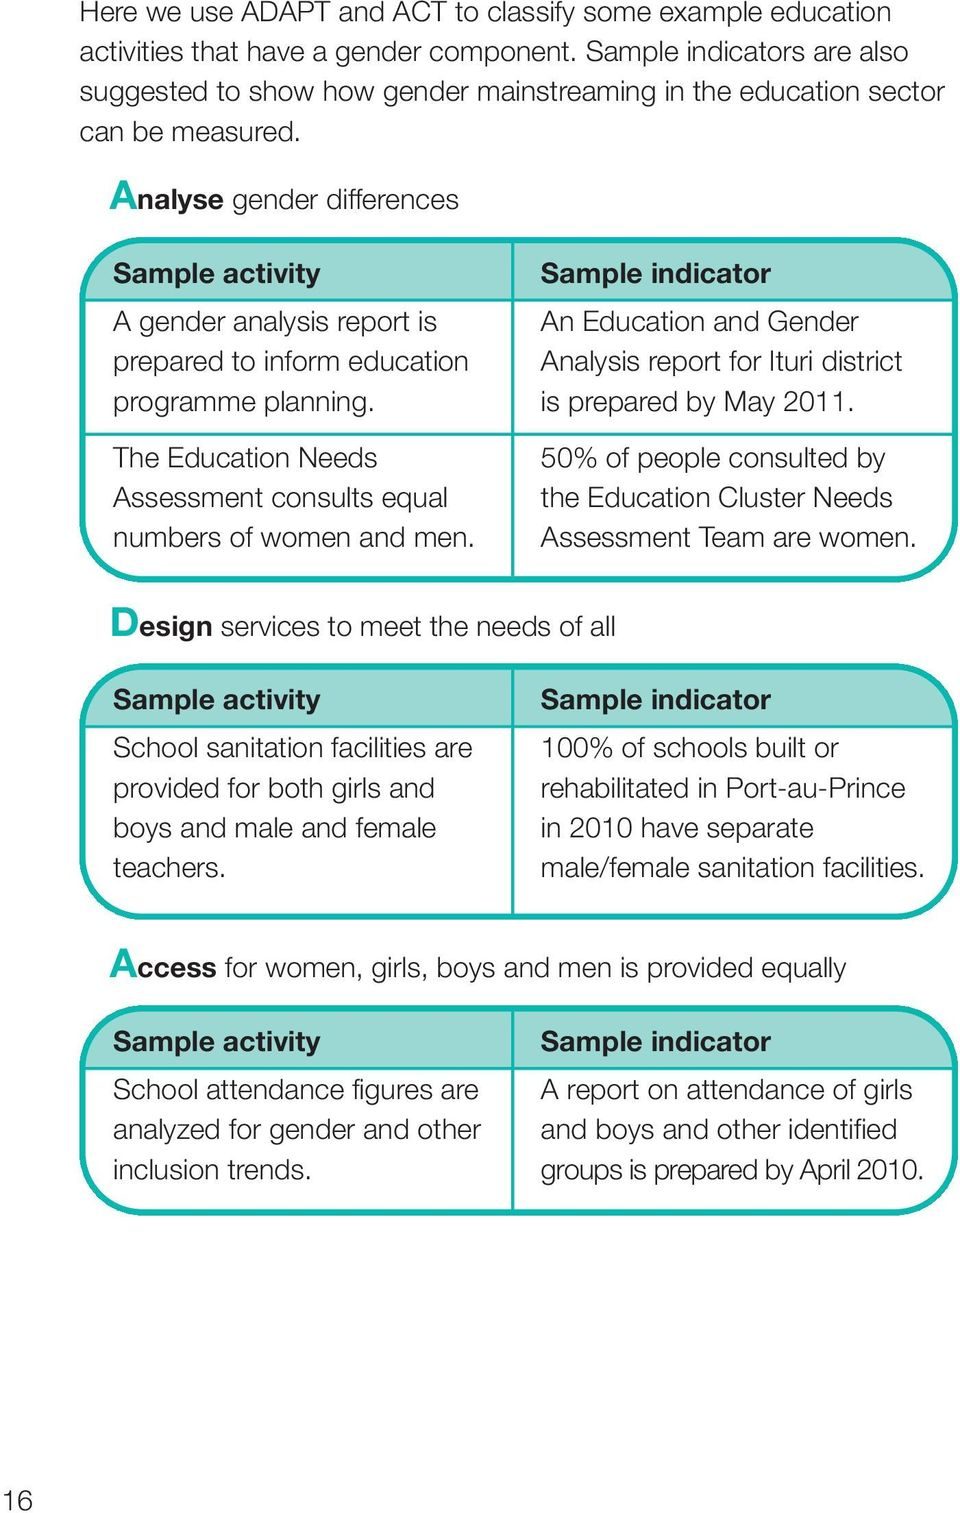 Analyse gender differences Sample activity A gender analysis report is prepared to inform education programme planning. The Education Needs Assessment consults equal numbers of women and men.